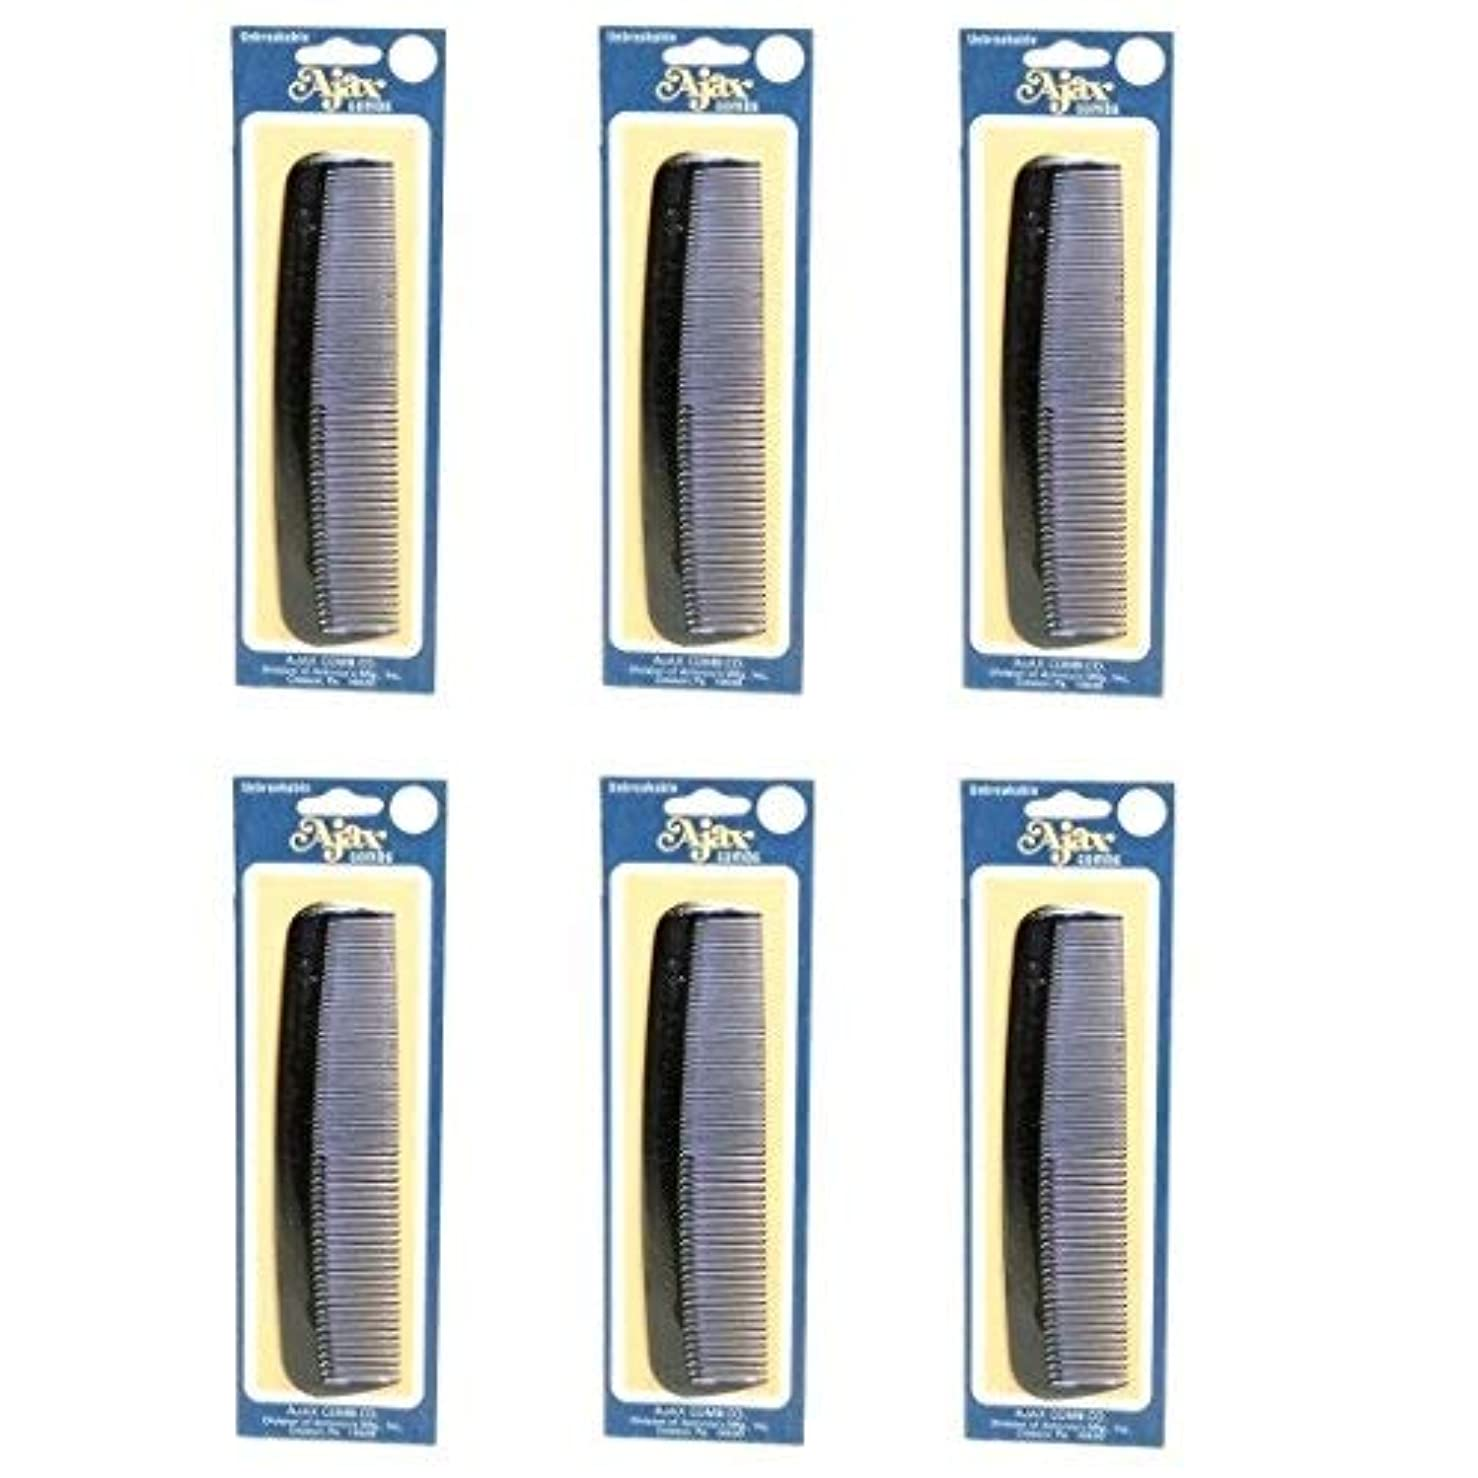 Ajax Unbreakable Hair Combs Super Flexible Pocket Sized Lifetime Guarantee - Proudly Made in the USA (Pack of 6) [並行輸入品]